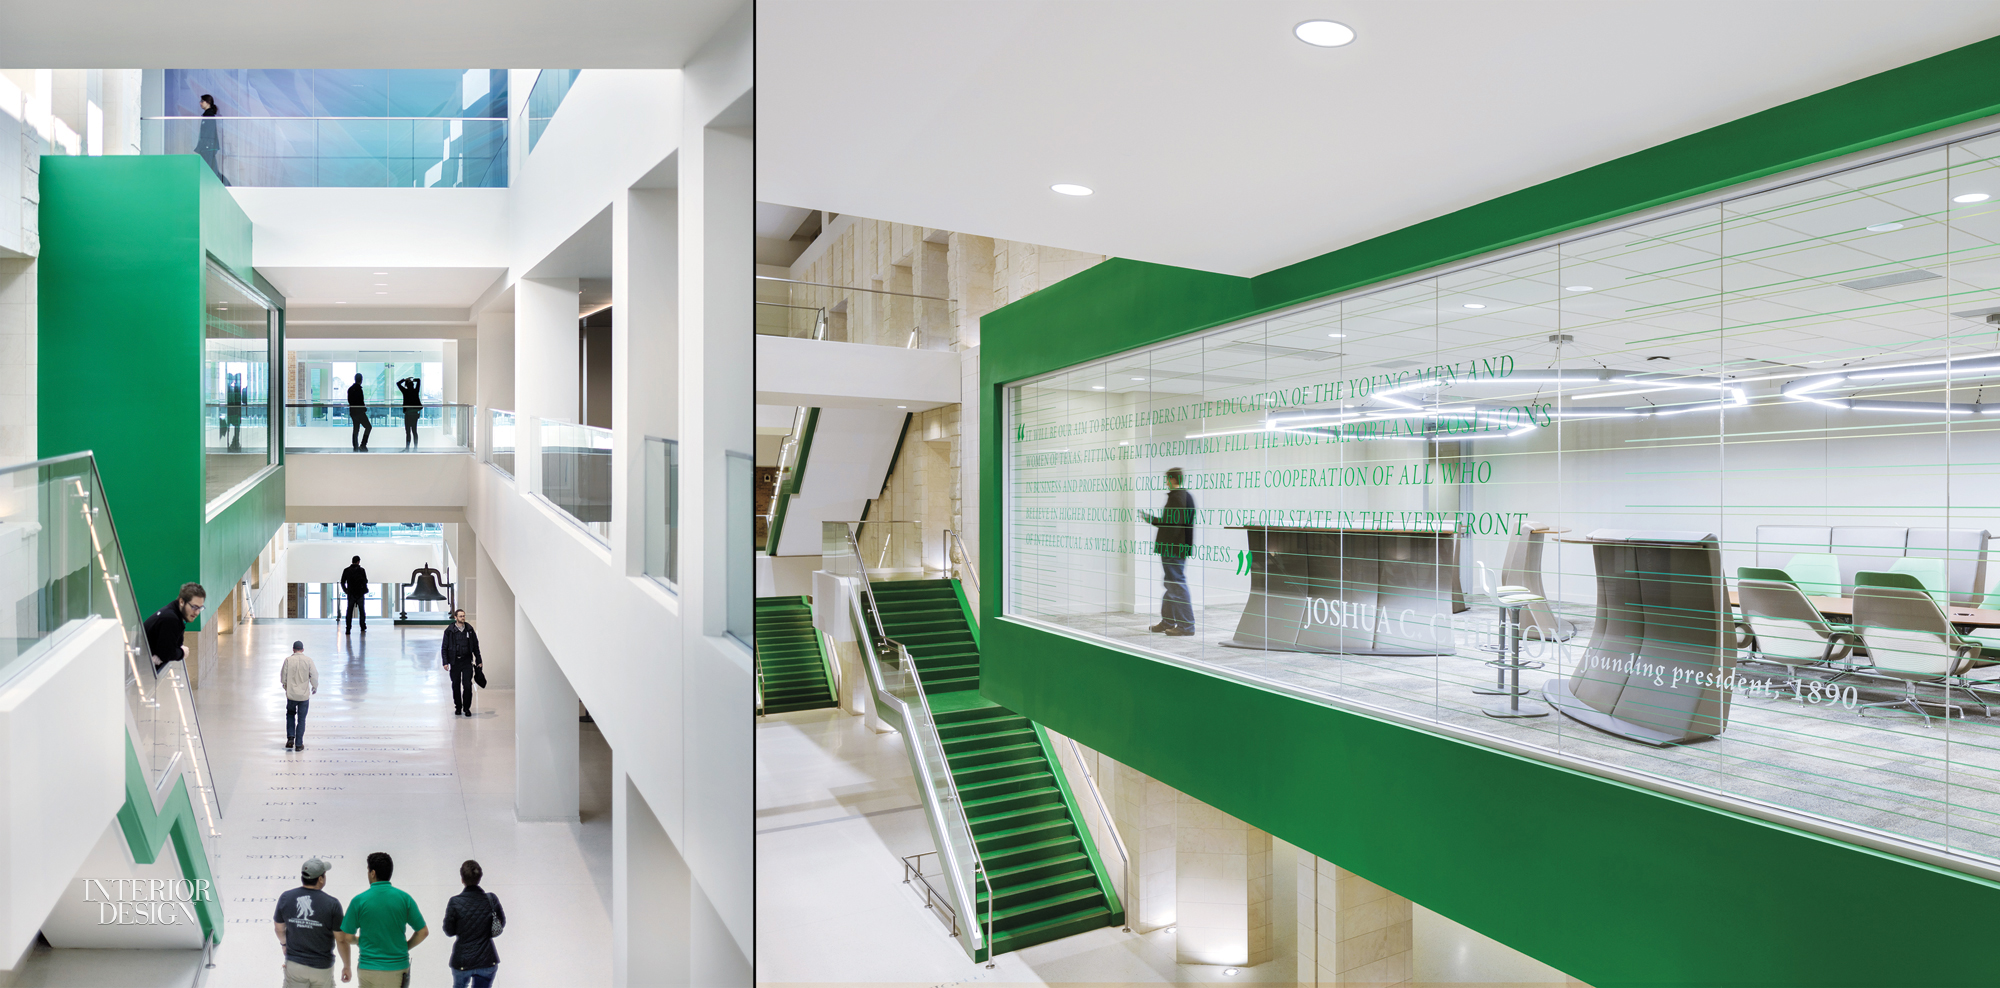 8 simply amazing university buildings interior design for Building design courses